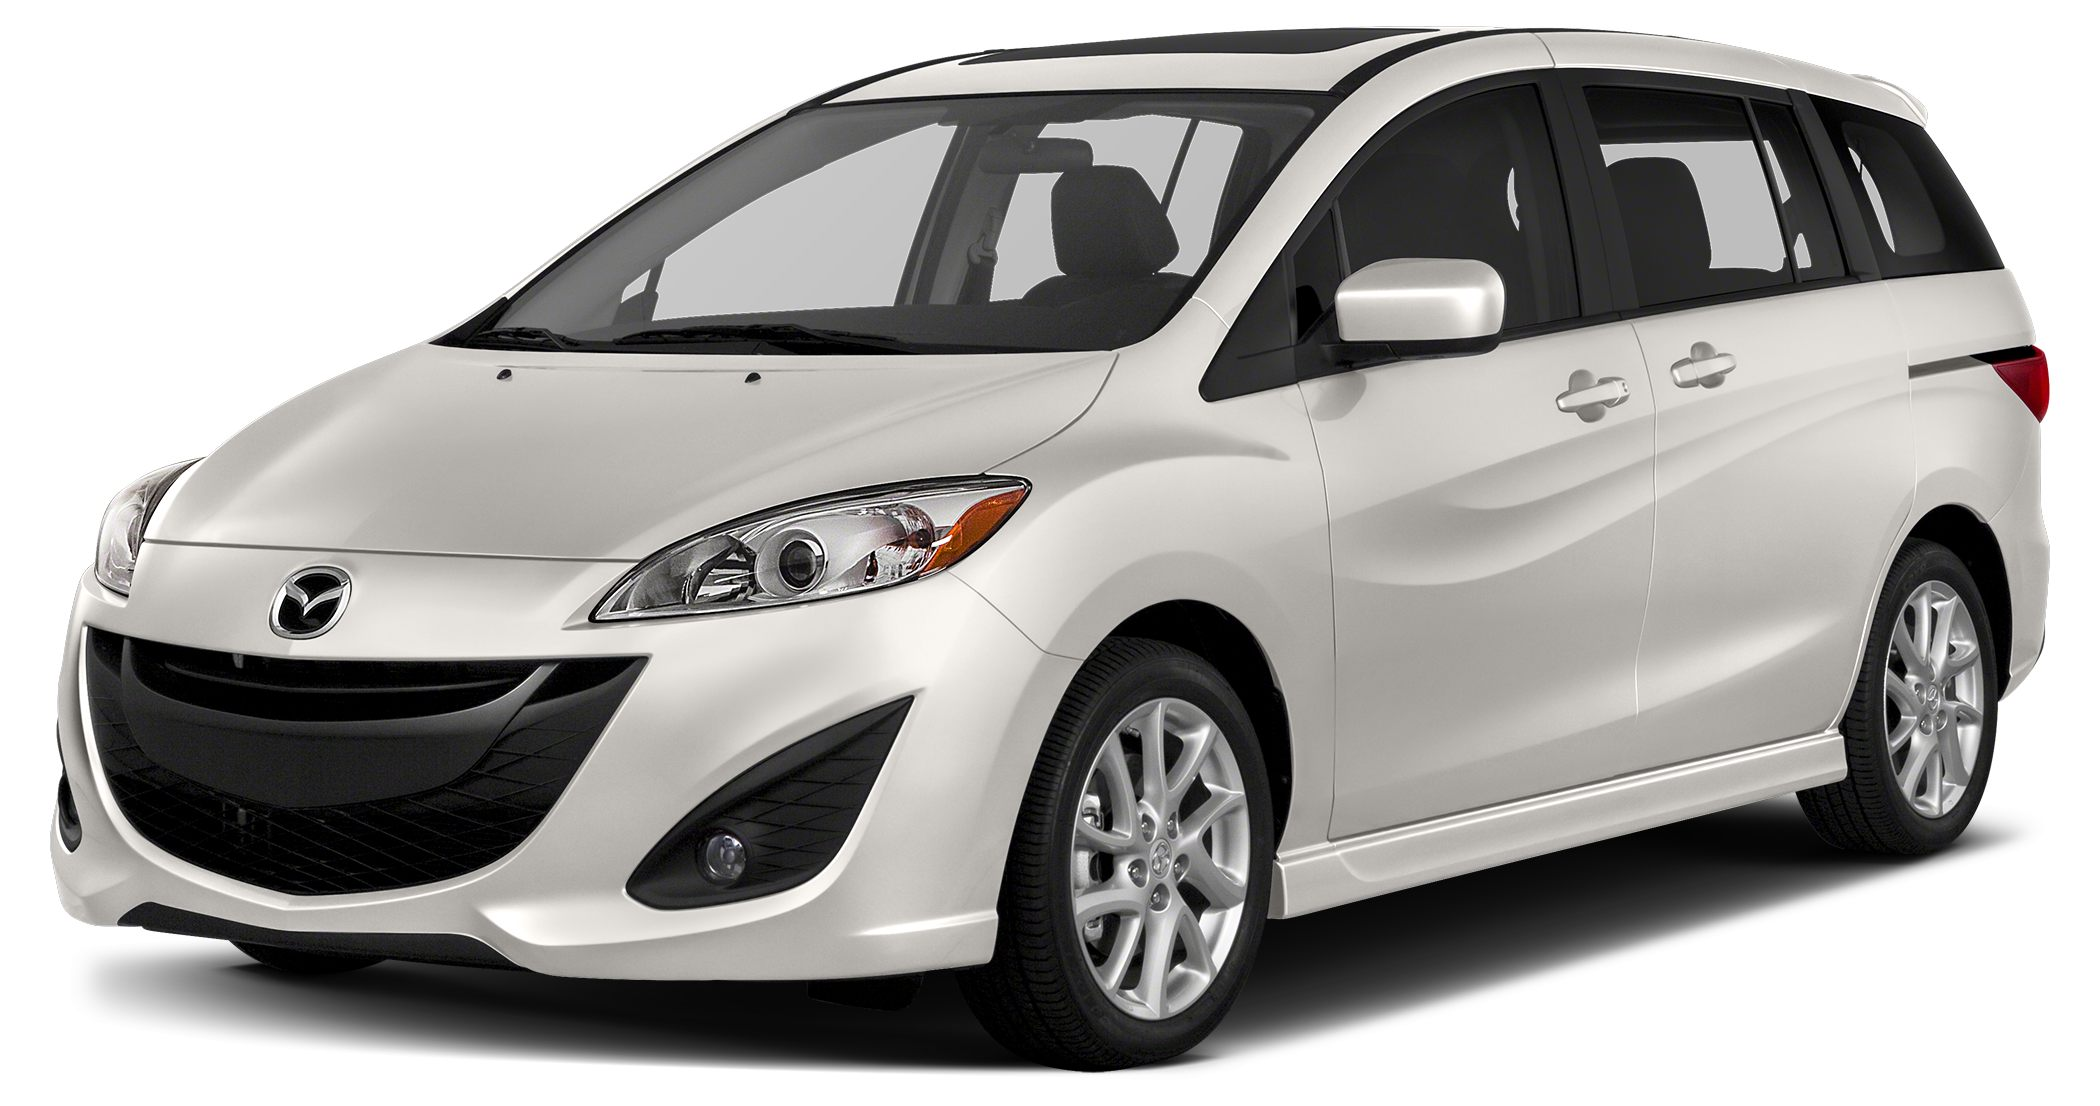 2015 Mazda MAZDA5 Touring Land a deal on this certified 2015 Mazda Mazda5 Touring while we have it